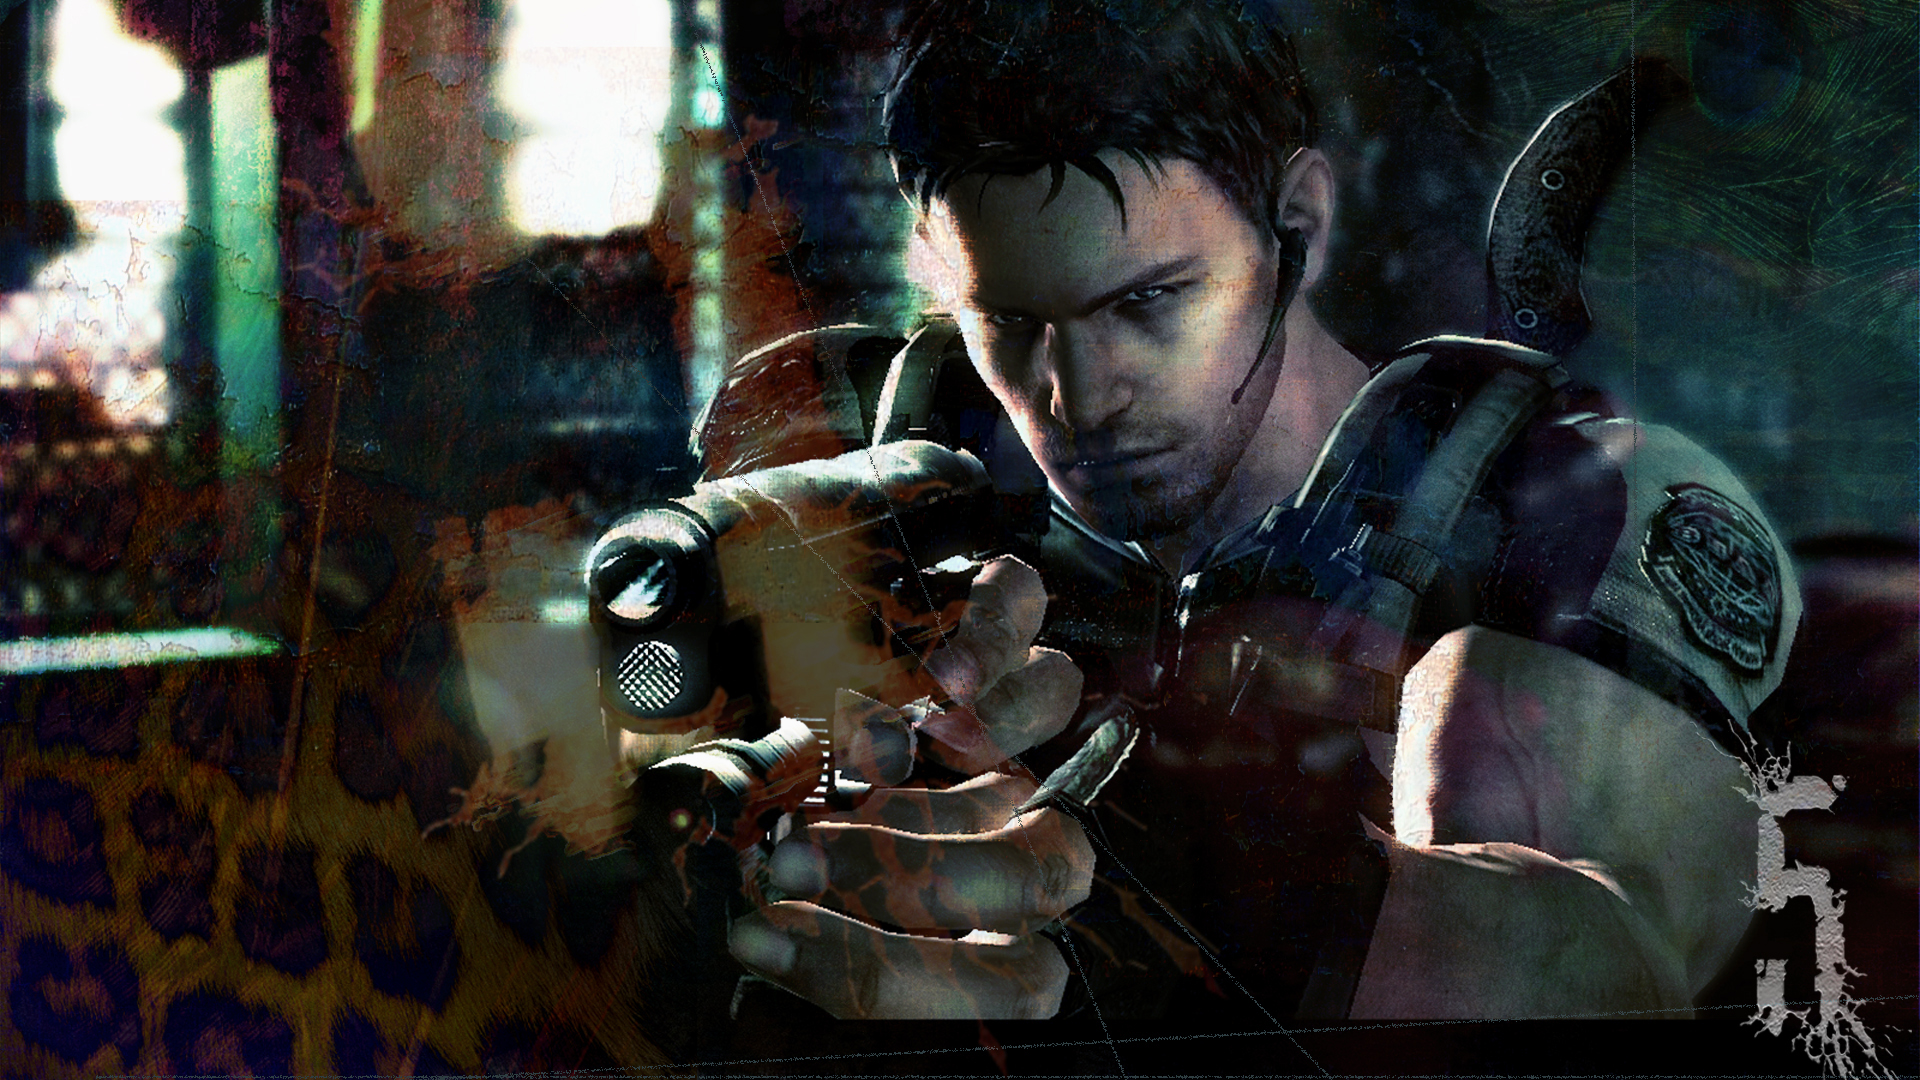 Resident Evil 5 - Taking Aim Wallpapers